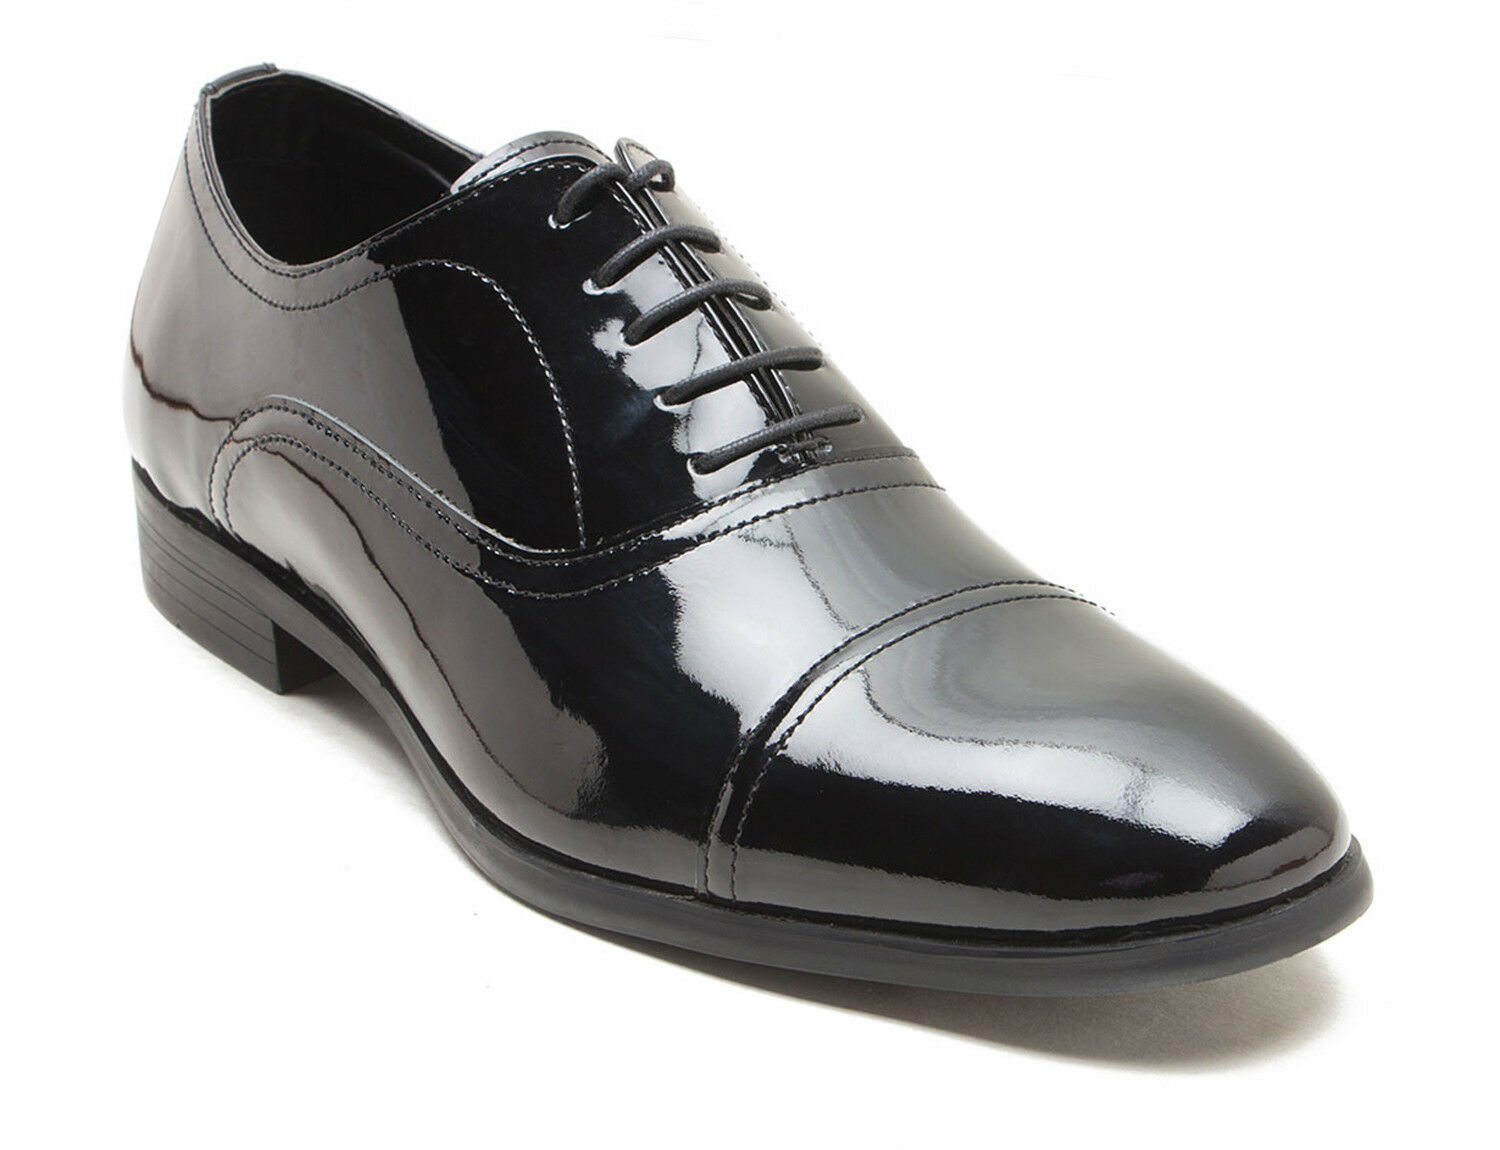 Red Tape Shoes Boston Black Patent Leather Mens Formal Shoes Tape  RRP ! a93853